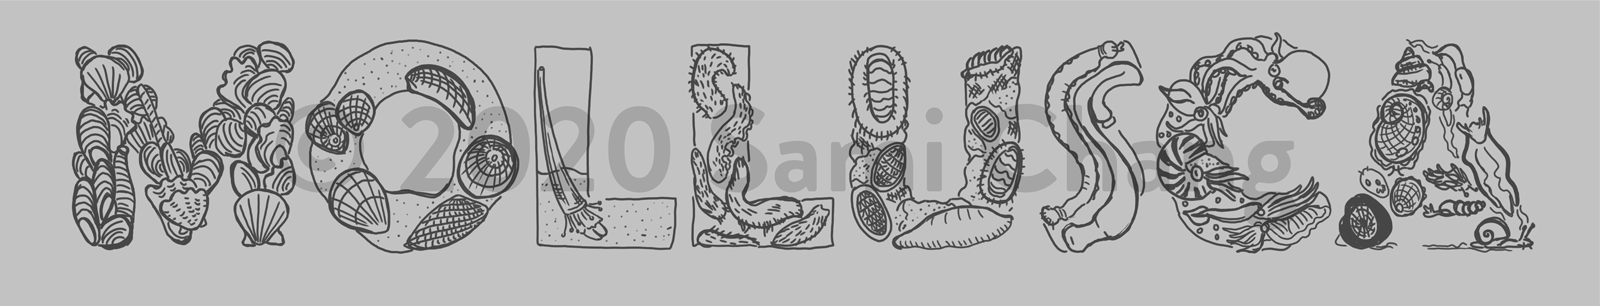 MOLLUSCA sketch, with each letter illustrating a group of mollusks